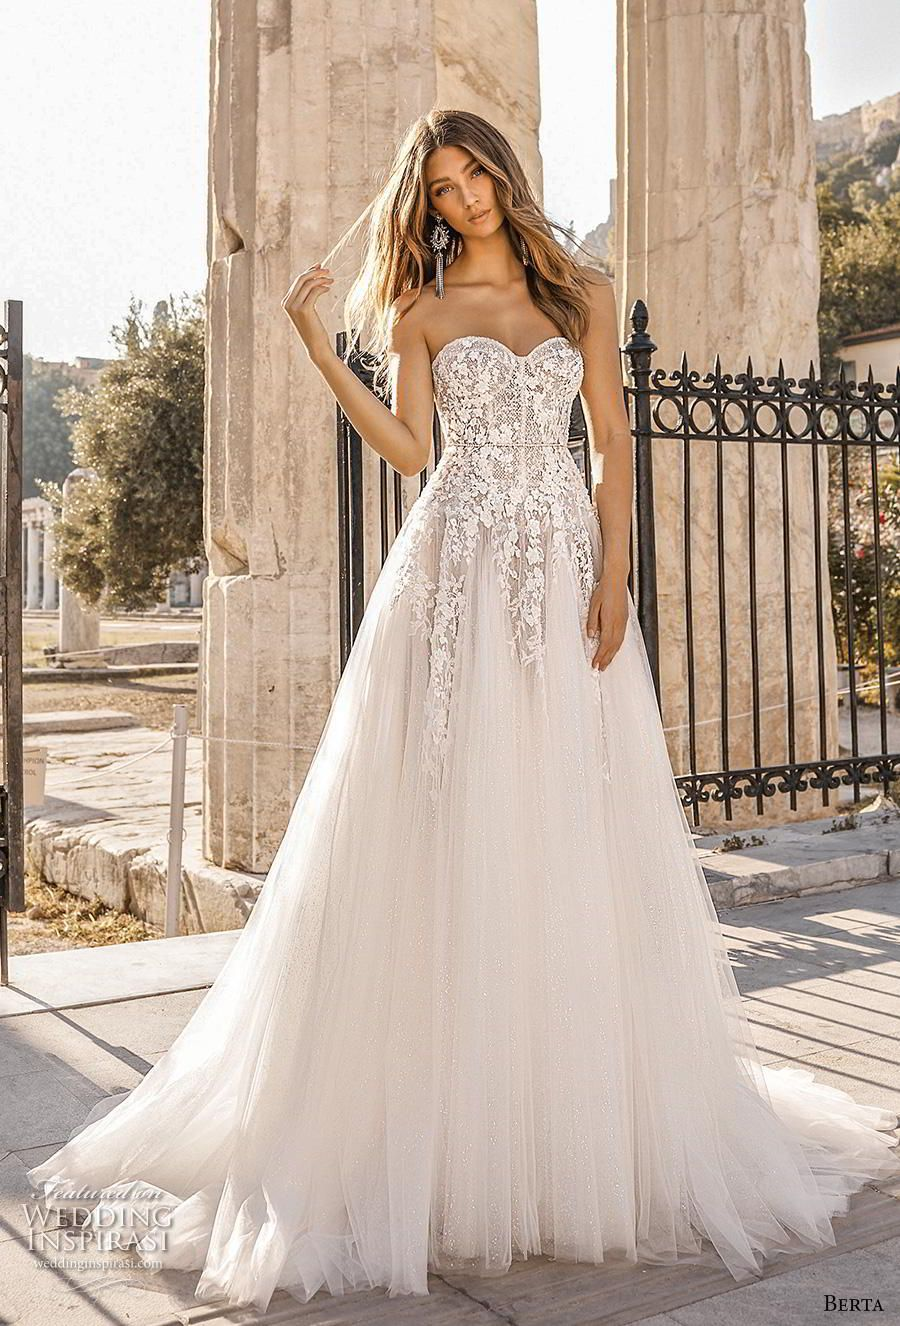 bdbacc4c56 Weddinginspirasi.com featuring - berta fall 2019 bridal strapless  sweetheart neckline heavily embellished bodice romantic a line wedding dress  mid back ...